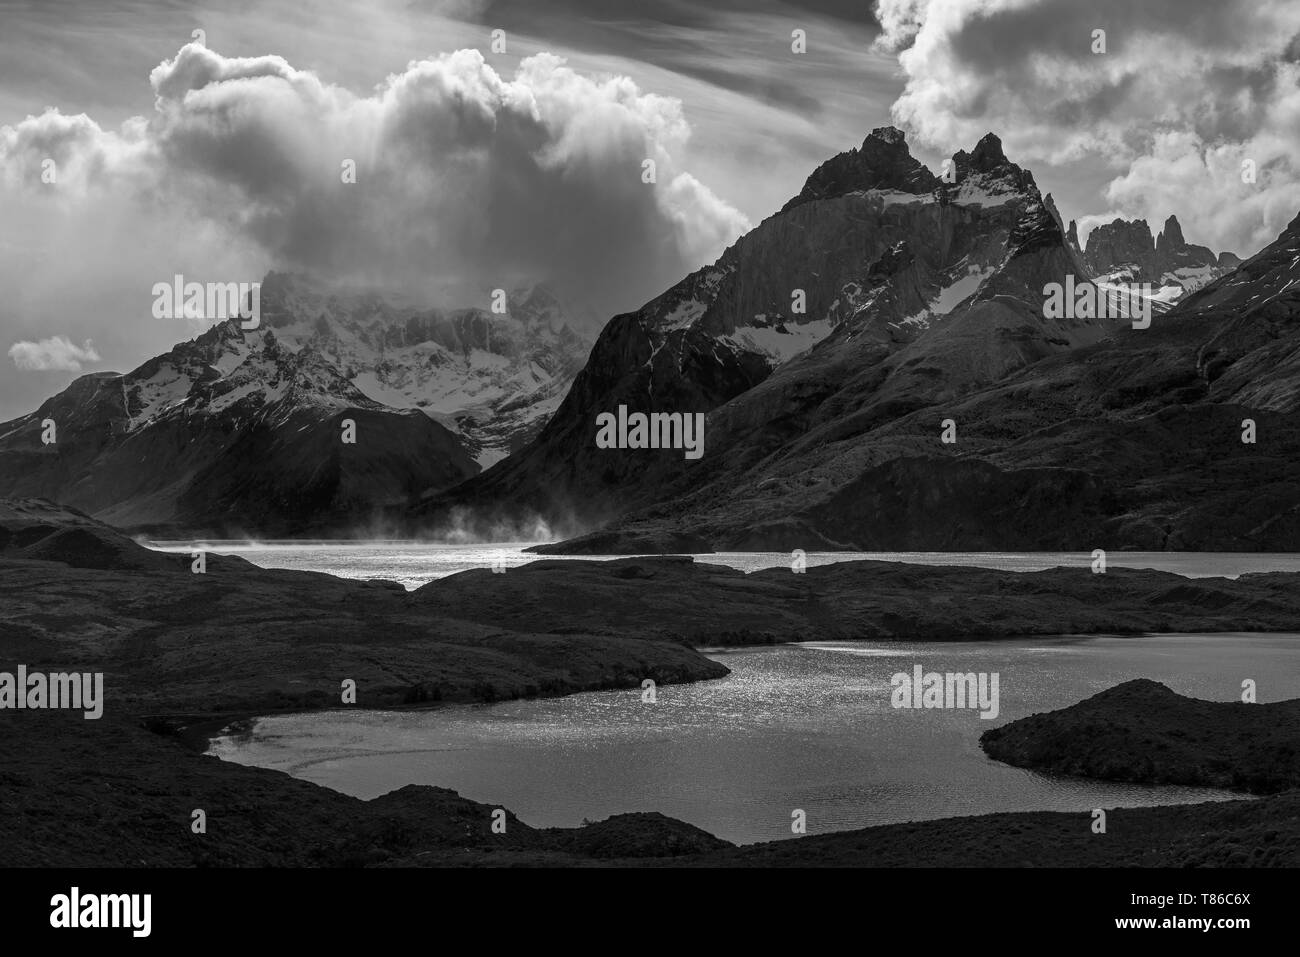 Black and white photograph of Nordenskjold and Pehoe Lake during a strong wind storm in Torres del Paine national park, Patagonia, Chile. - Stock Image